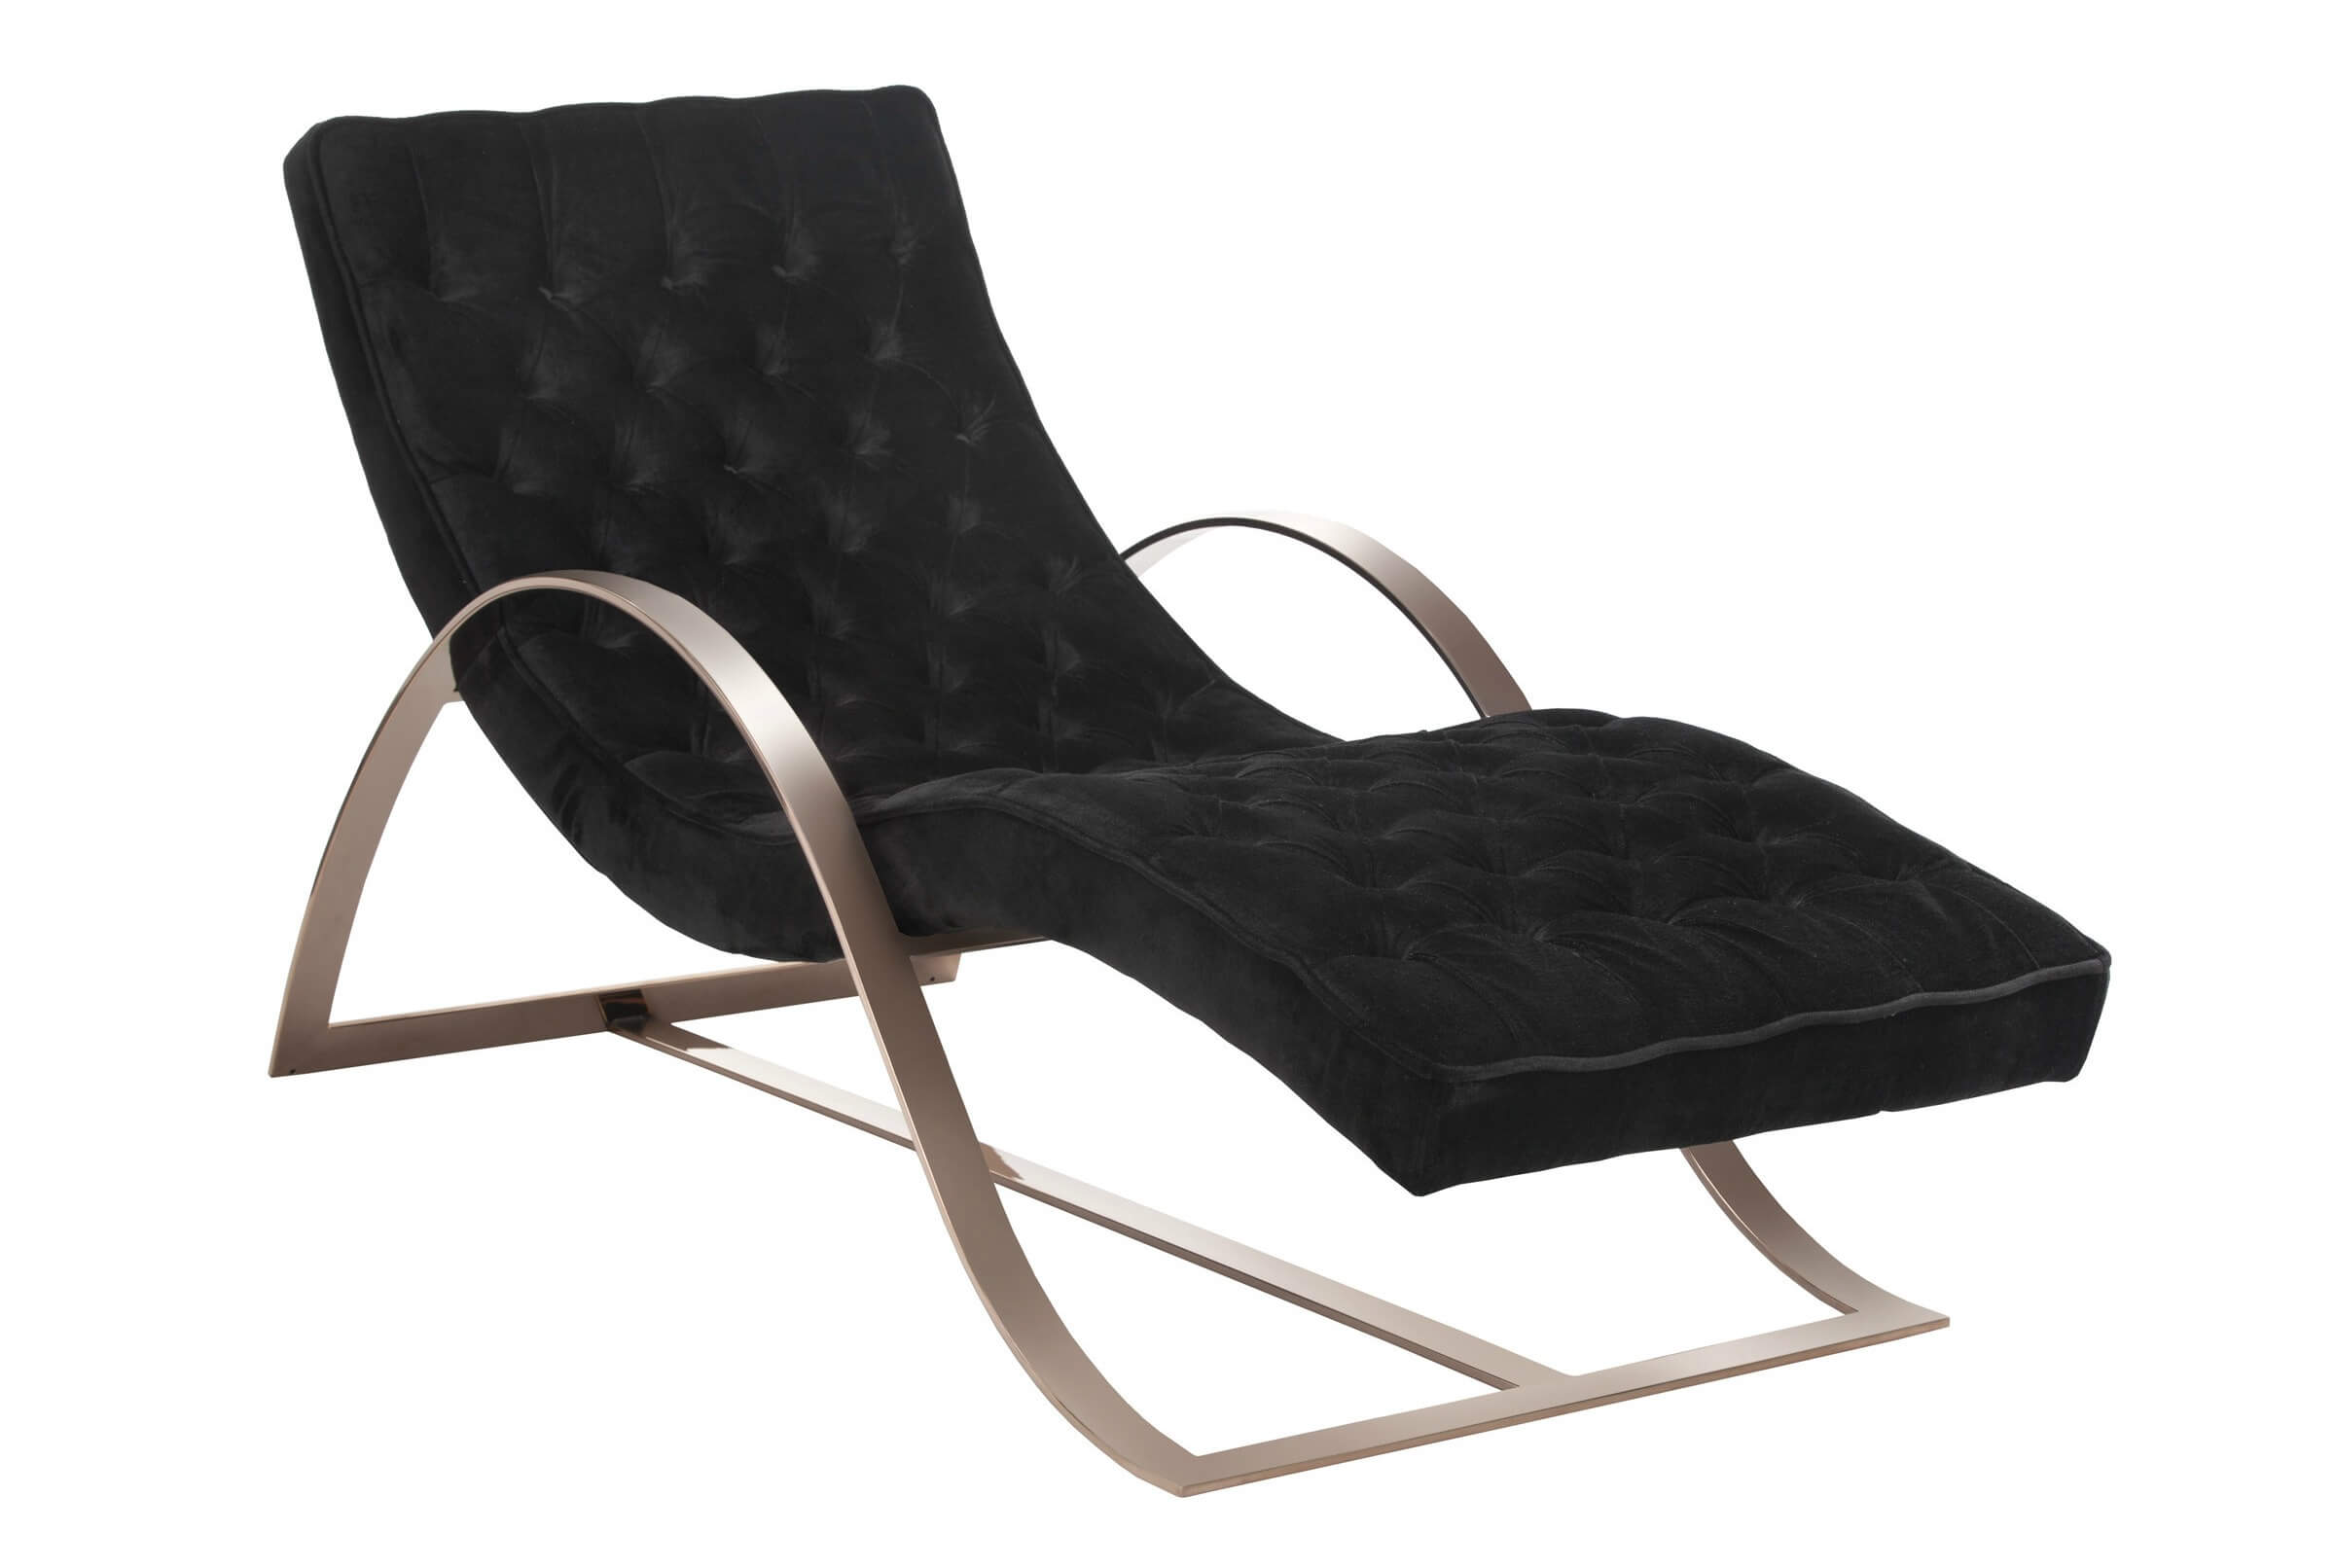 Top 20 types of black chaise lounges buying guide for Chaise lounge construction